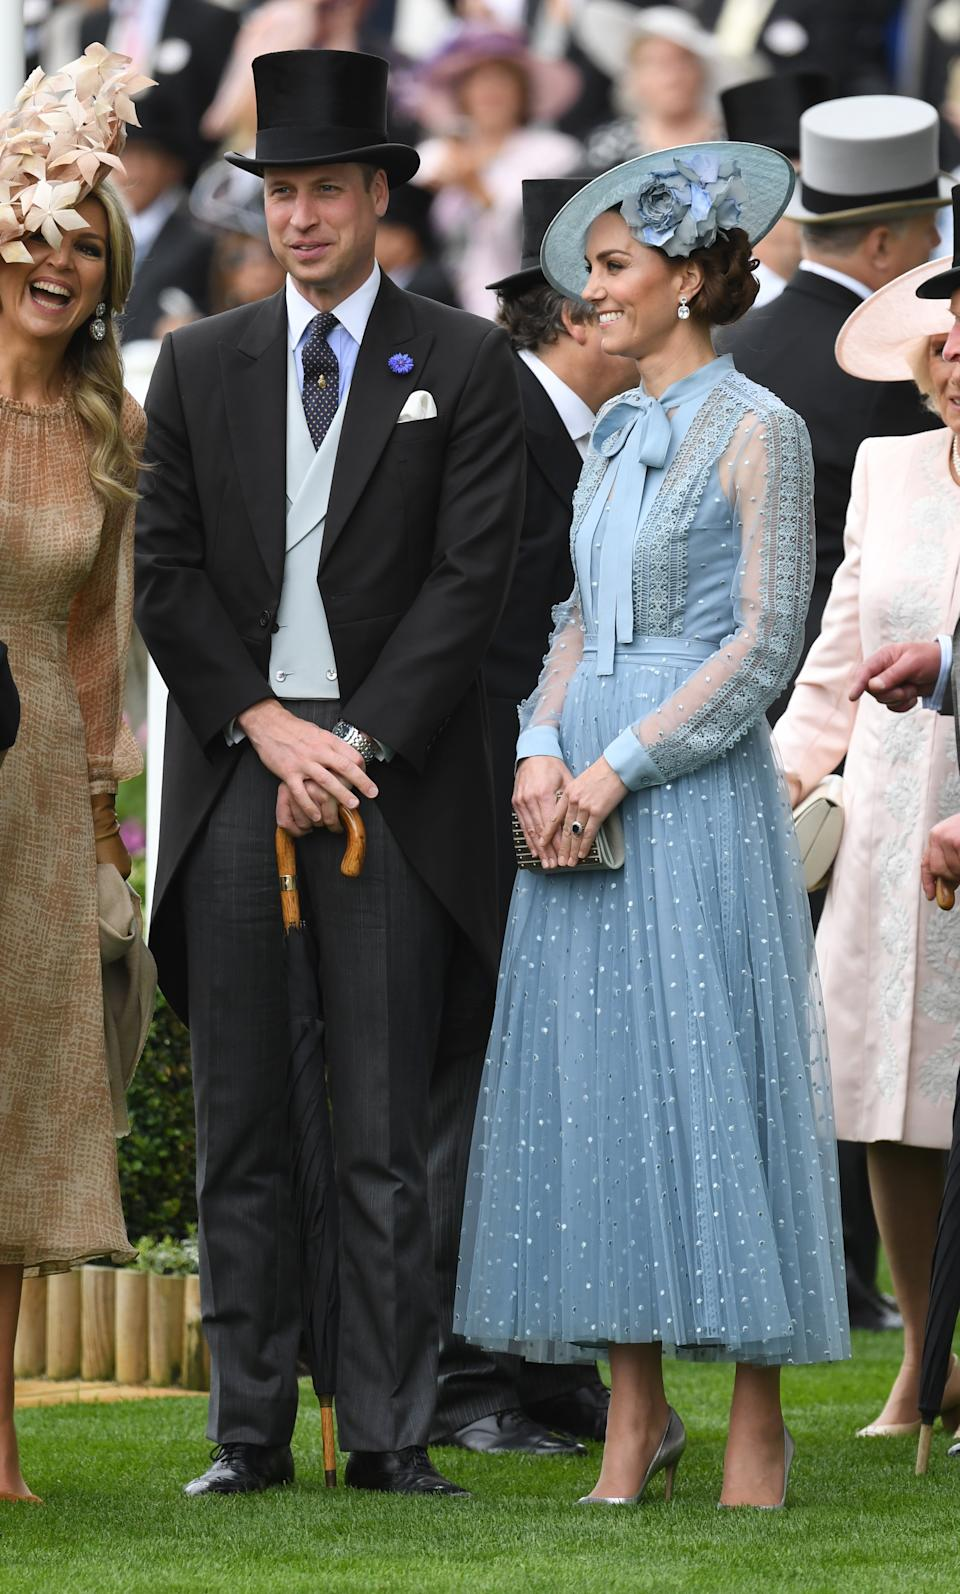 <p>The couple were every inch royal glamour in 2019 at Royal Ascot, one of the biggest royal events of the year. It was only the third time the duchess had attended the racing event. (PA Images)</p>